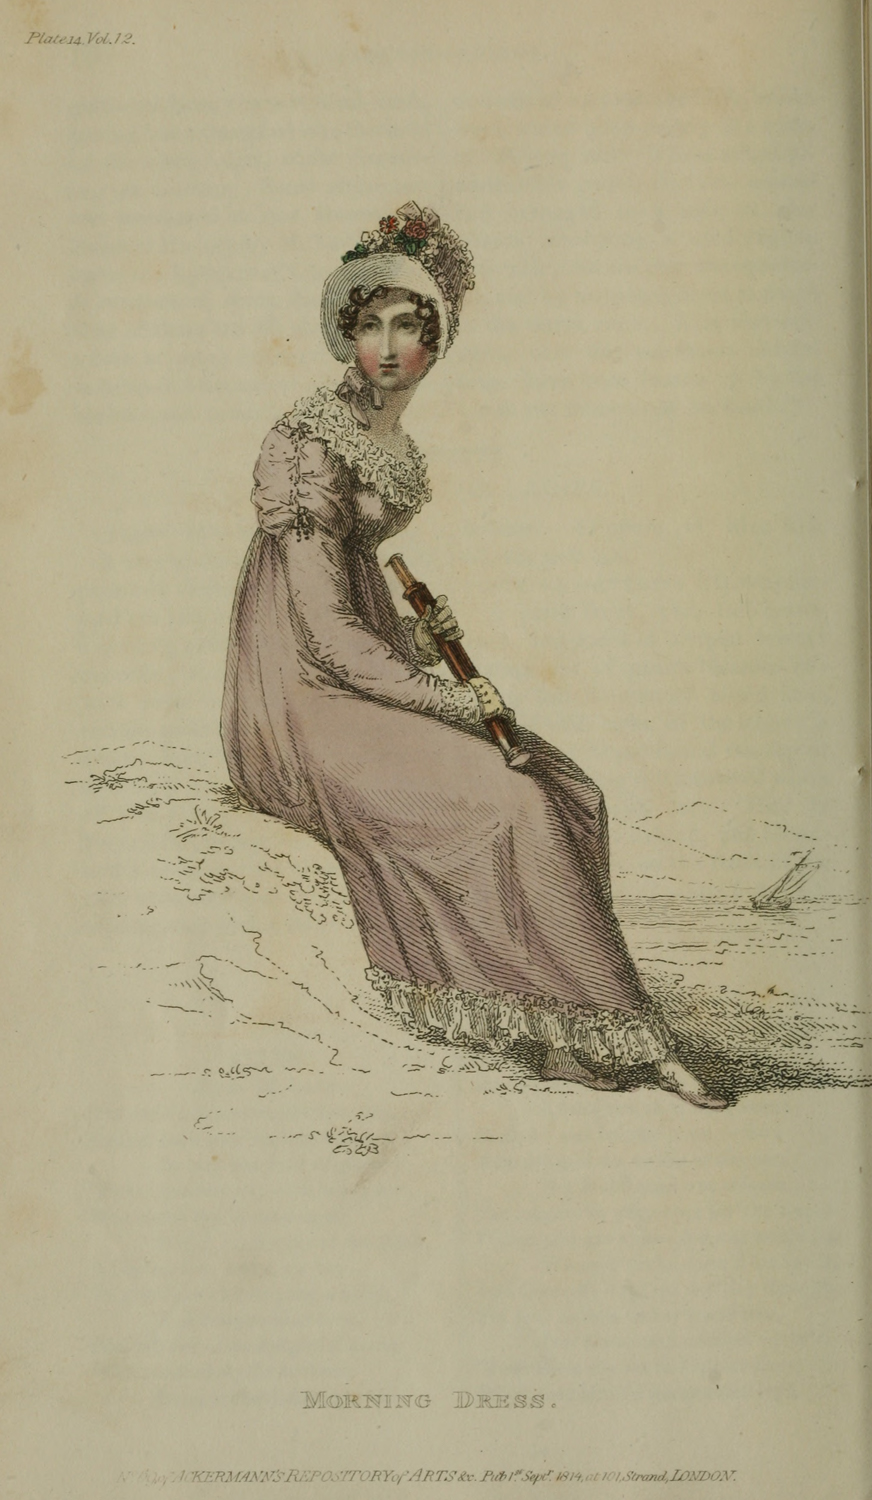 Telescope - 1814 v12 Ackermann's fashion plate 14 - Morning Dress